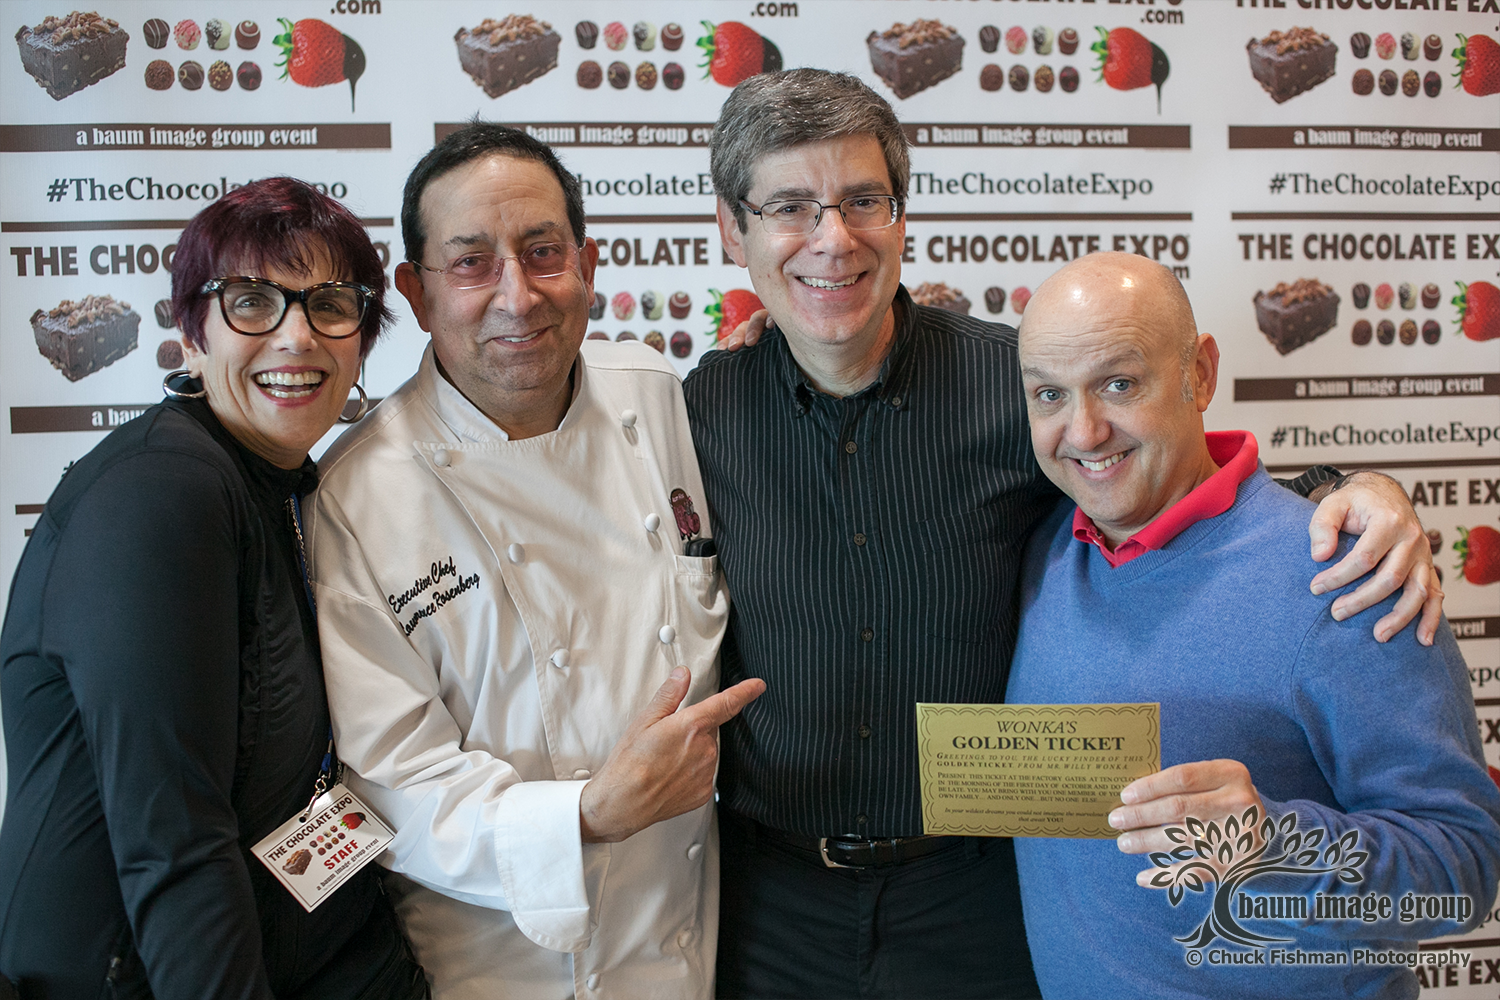 Baum_Image_Group_The_Chocolate_Expo_Chuck_Fishman_March4th2018_68.png